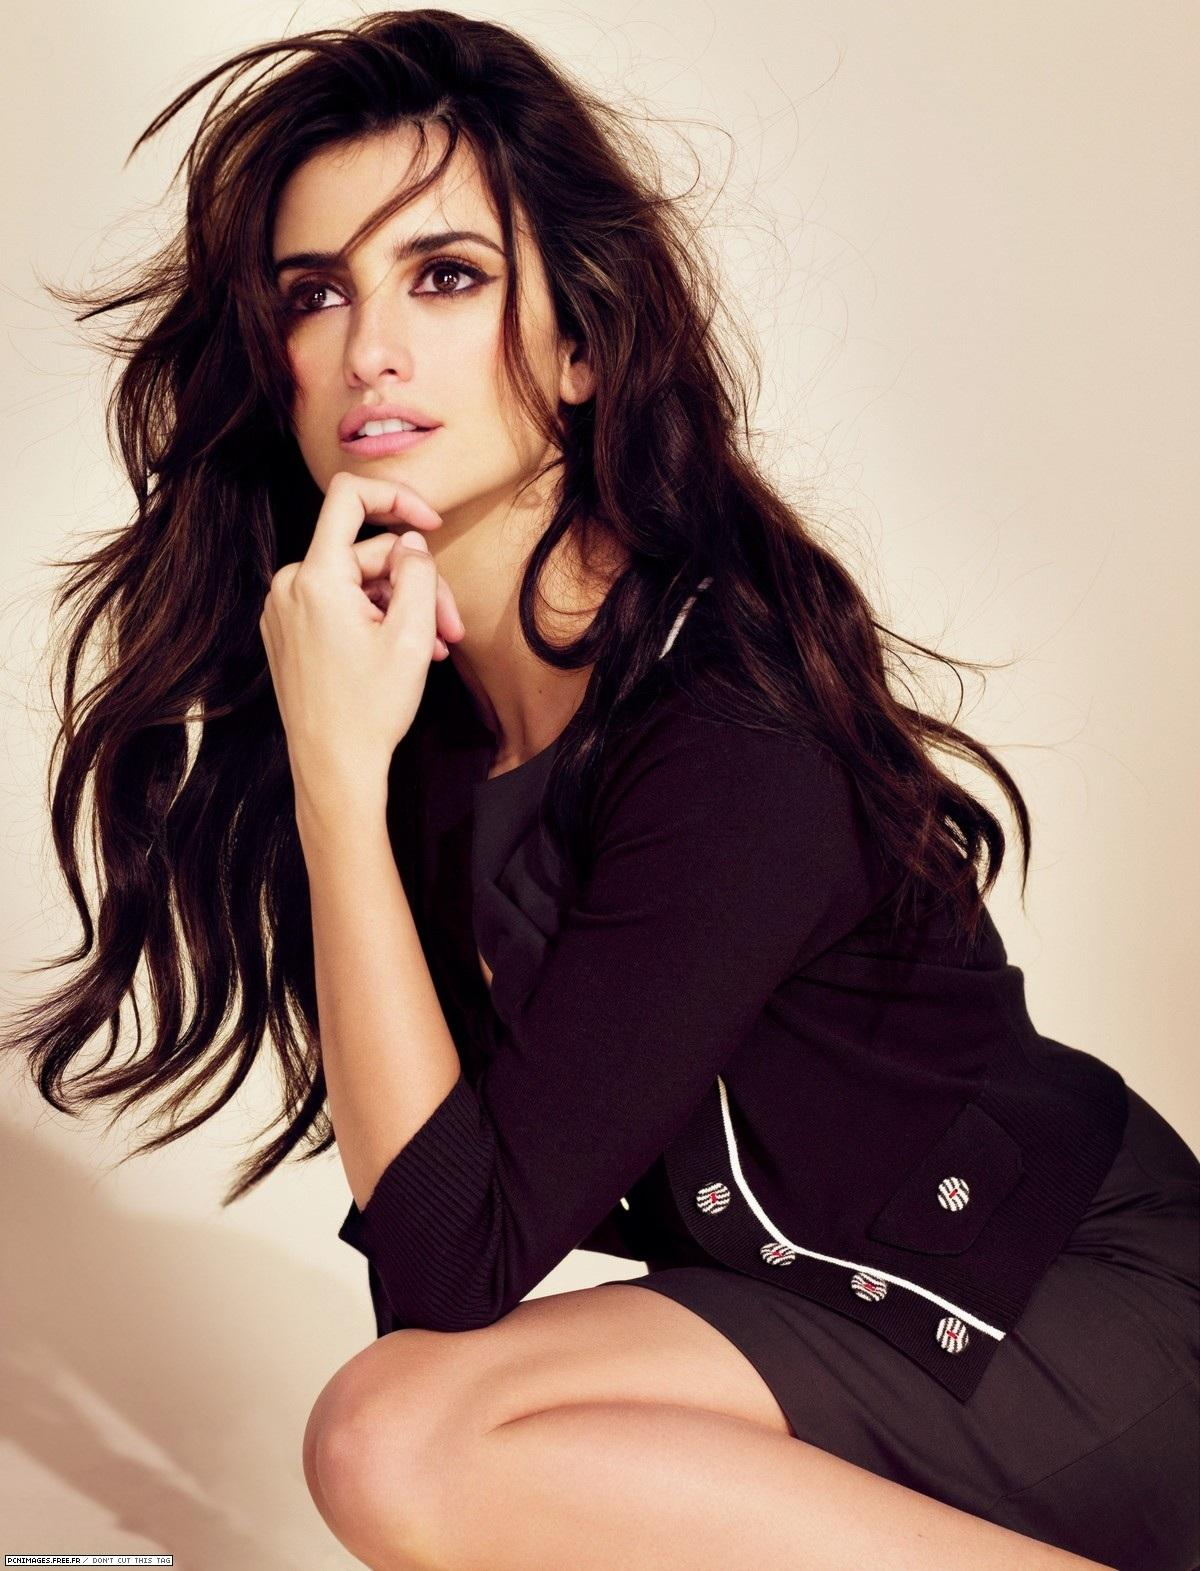 The Spanish actress and model Penelope Cruz and her works